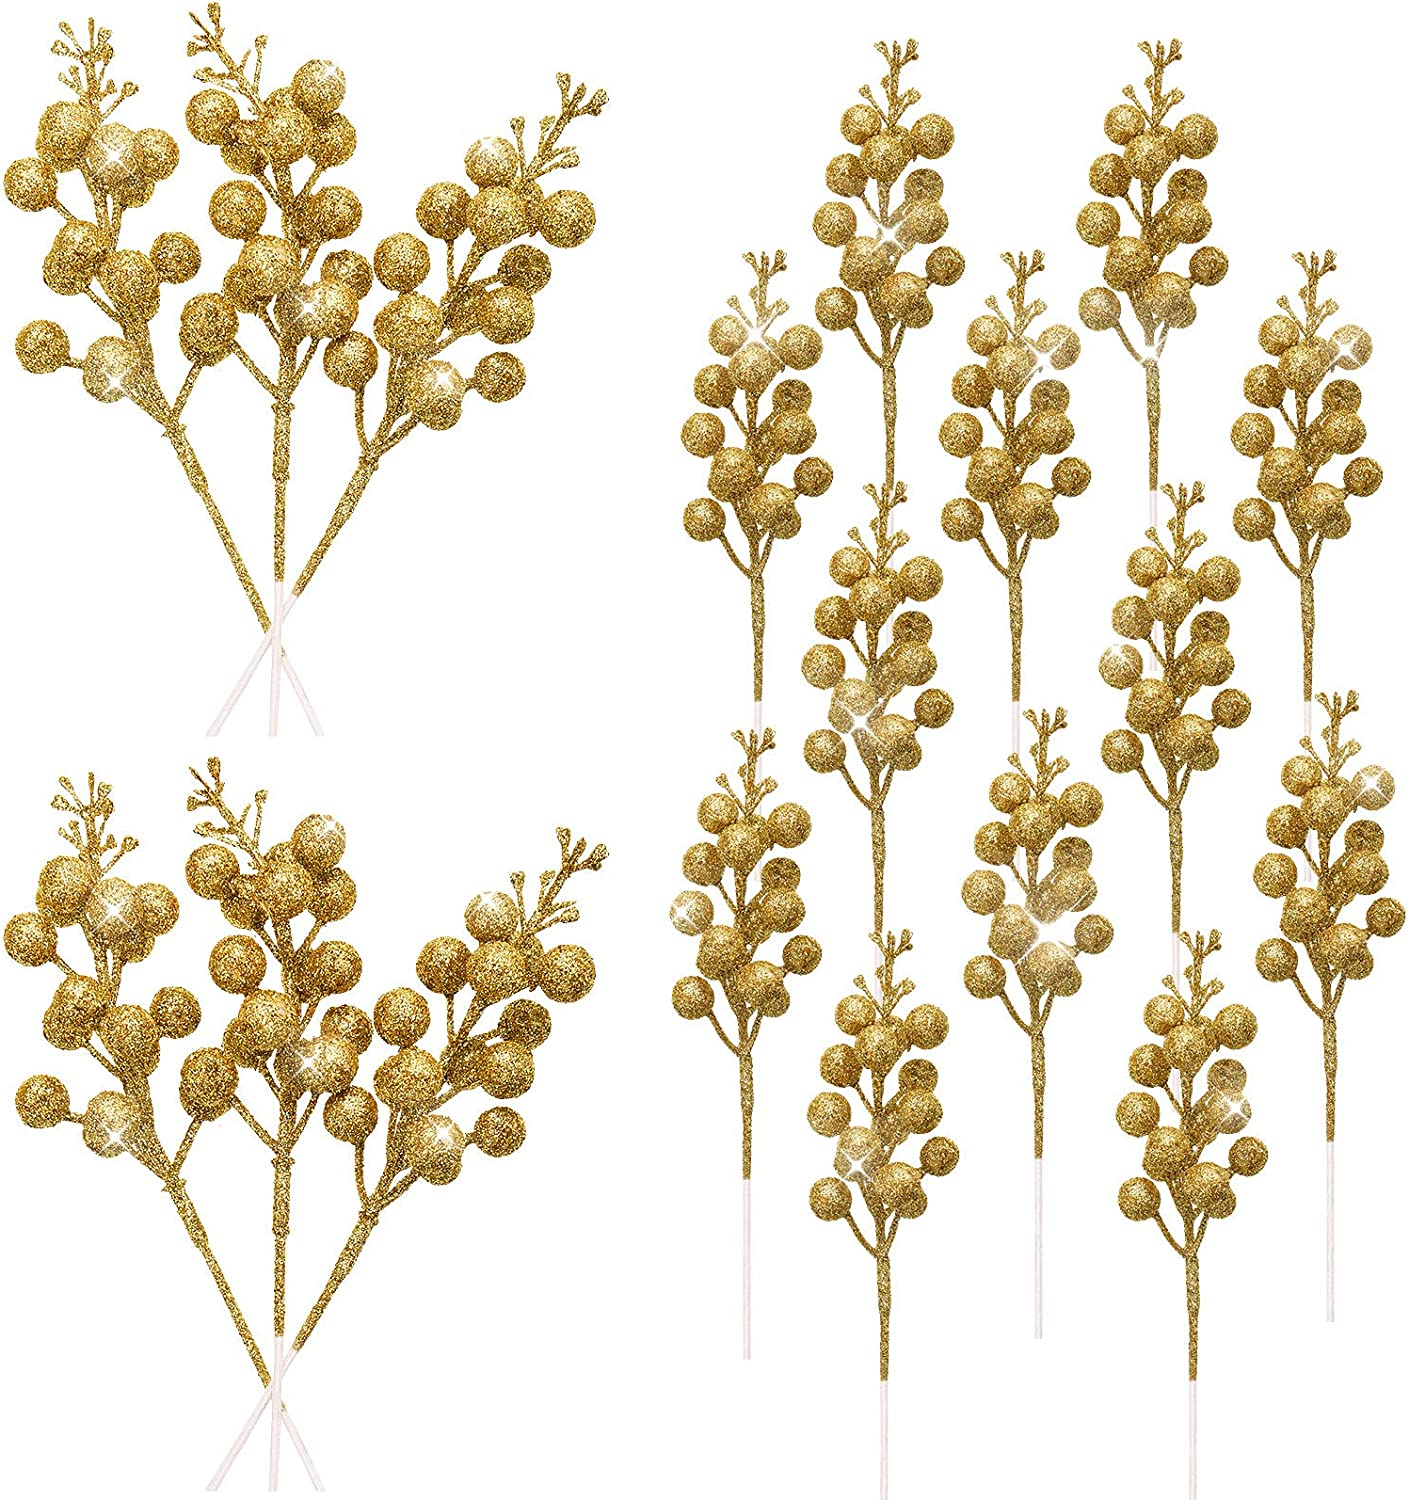 WILLBOND 18 Pieces Christmas Glitter Berries Stems Artificial Gold Berry Twig Stem Christmas Berry Picks Decorations for Christmas Tree Ornaments, Wreath, Crafts and Home Decor